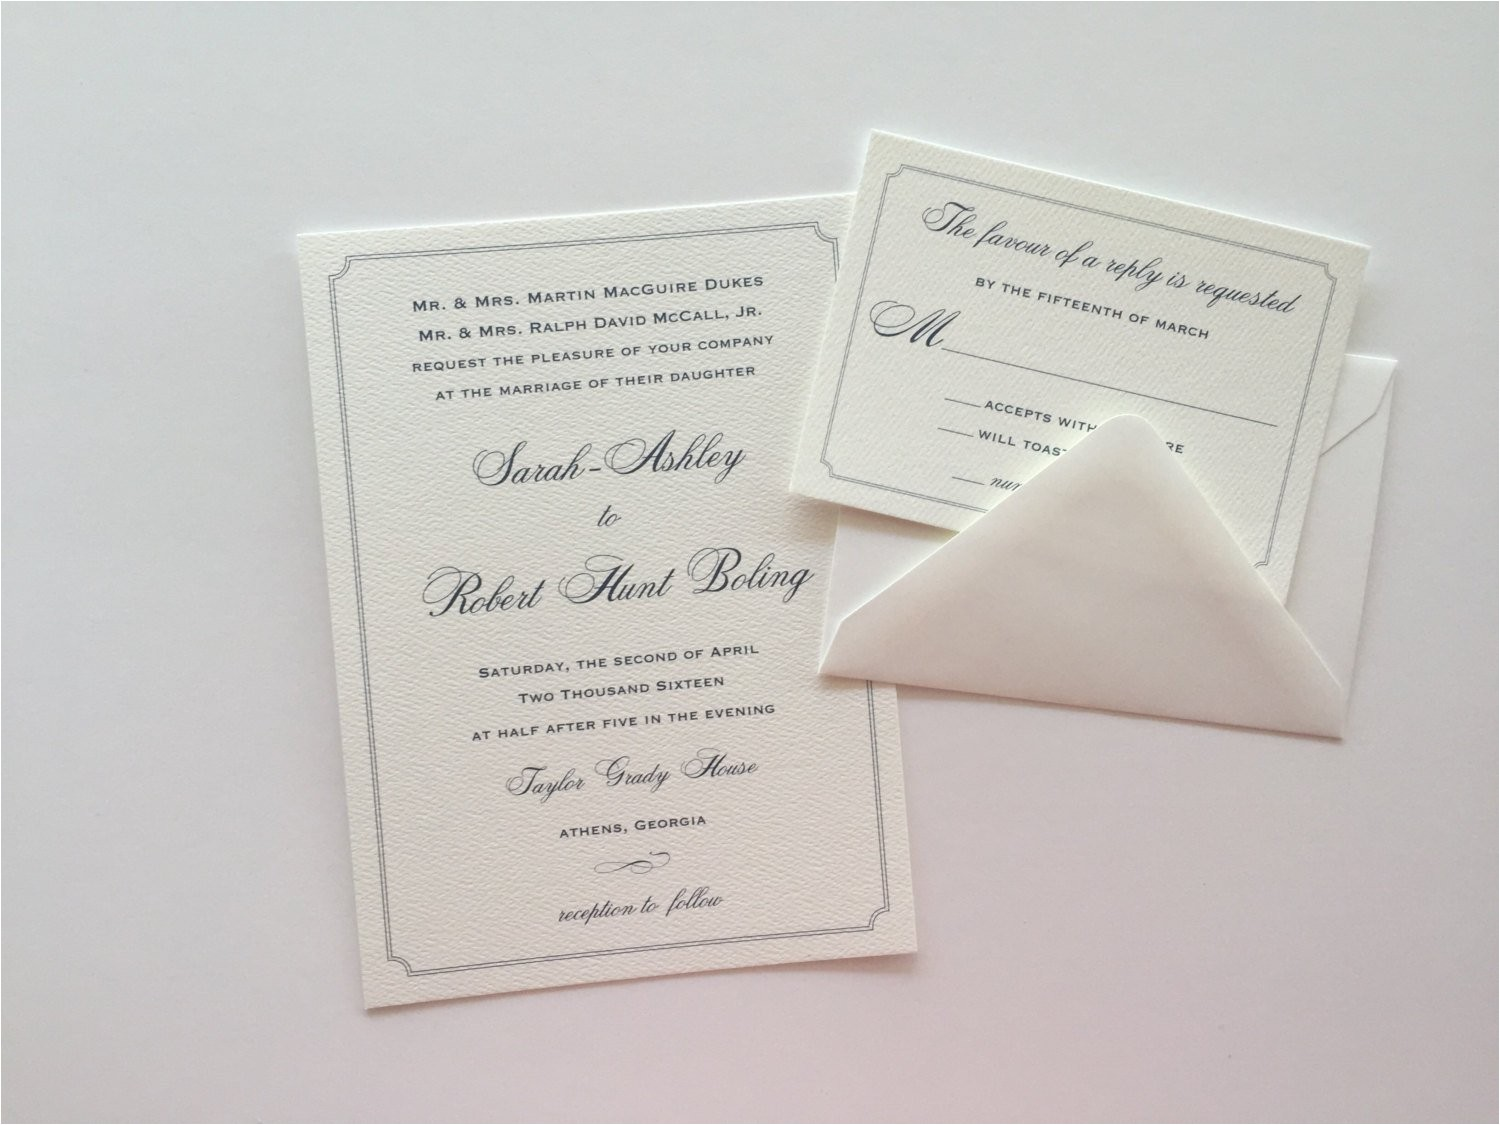 Textured Paper for Wedding Invitations Custom Wedding Invitation Textured Paper Wedding Invitation